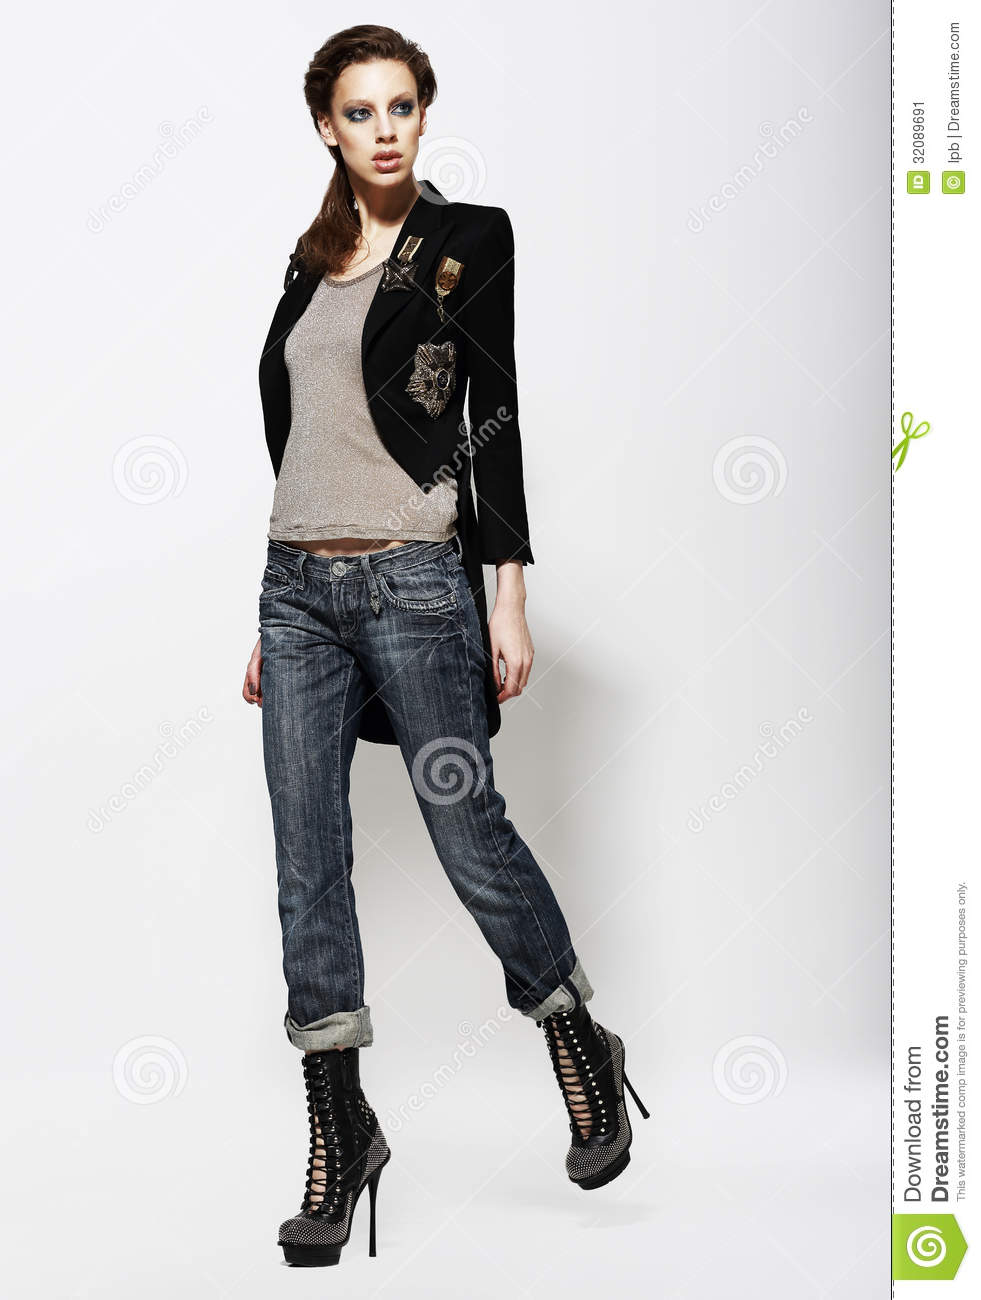 Fashionable Glamorous Woman In Jeans And High Boots Vogue